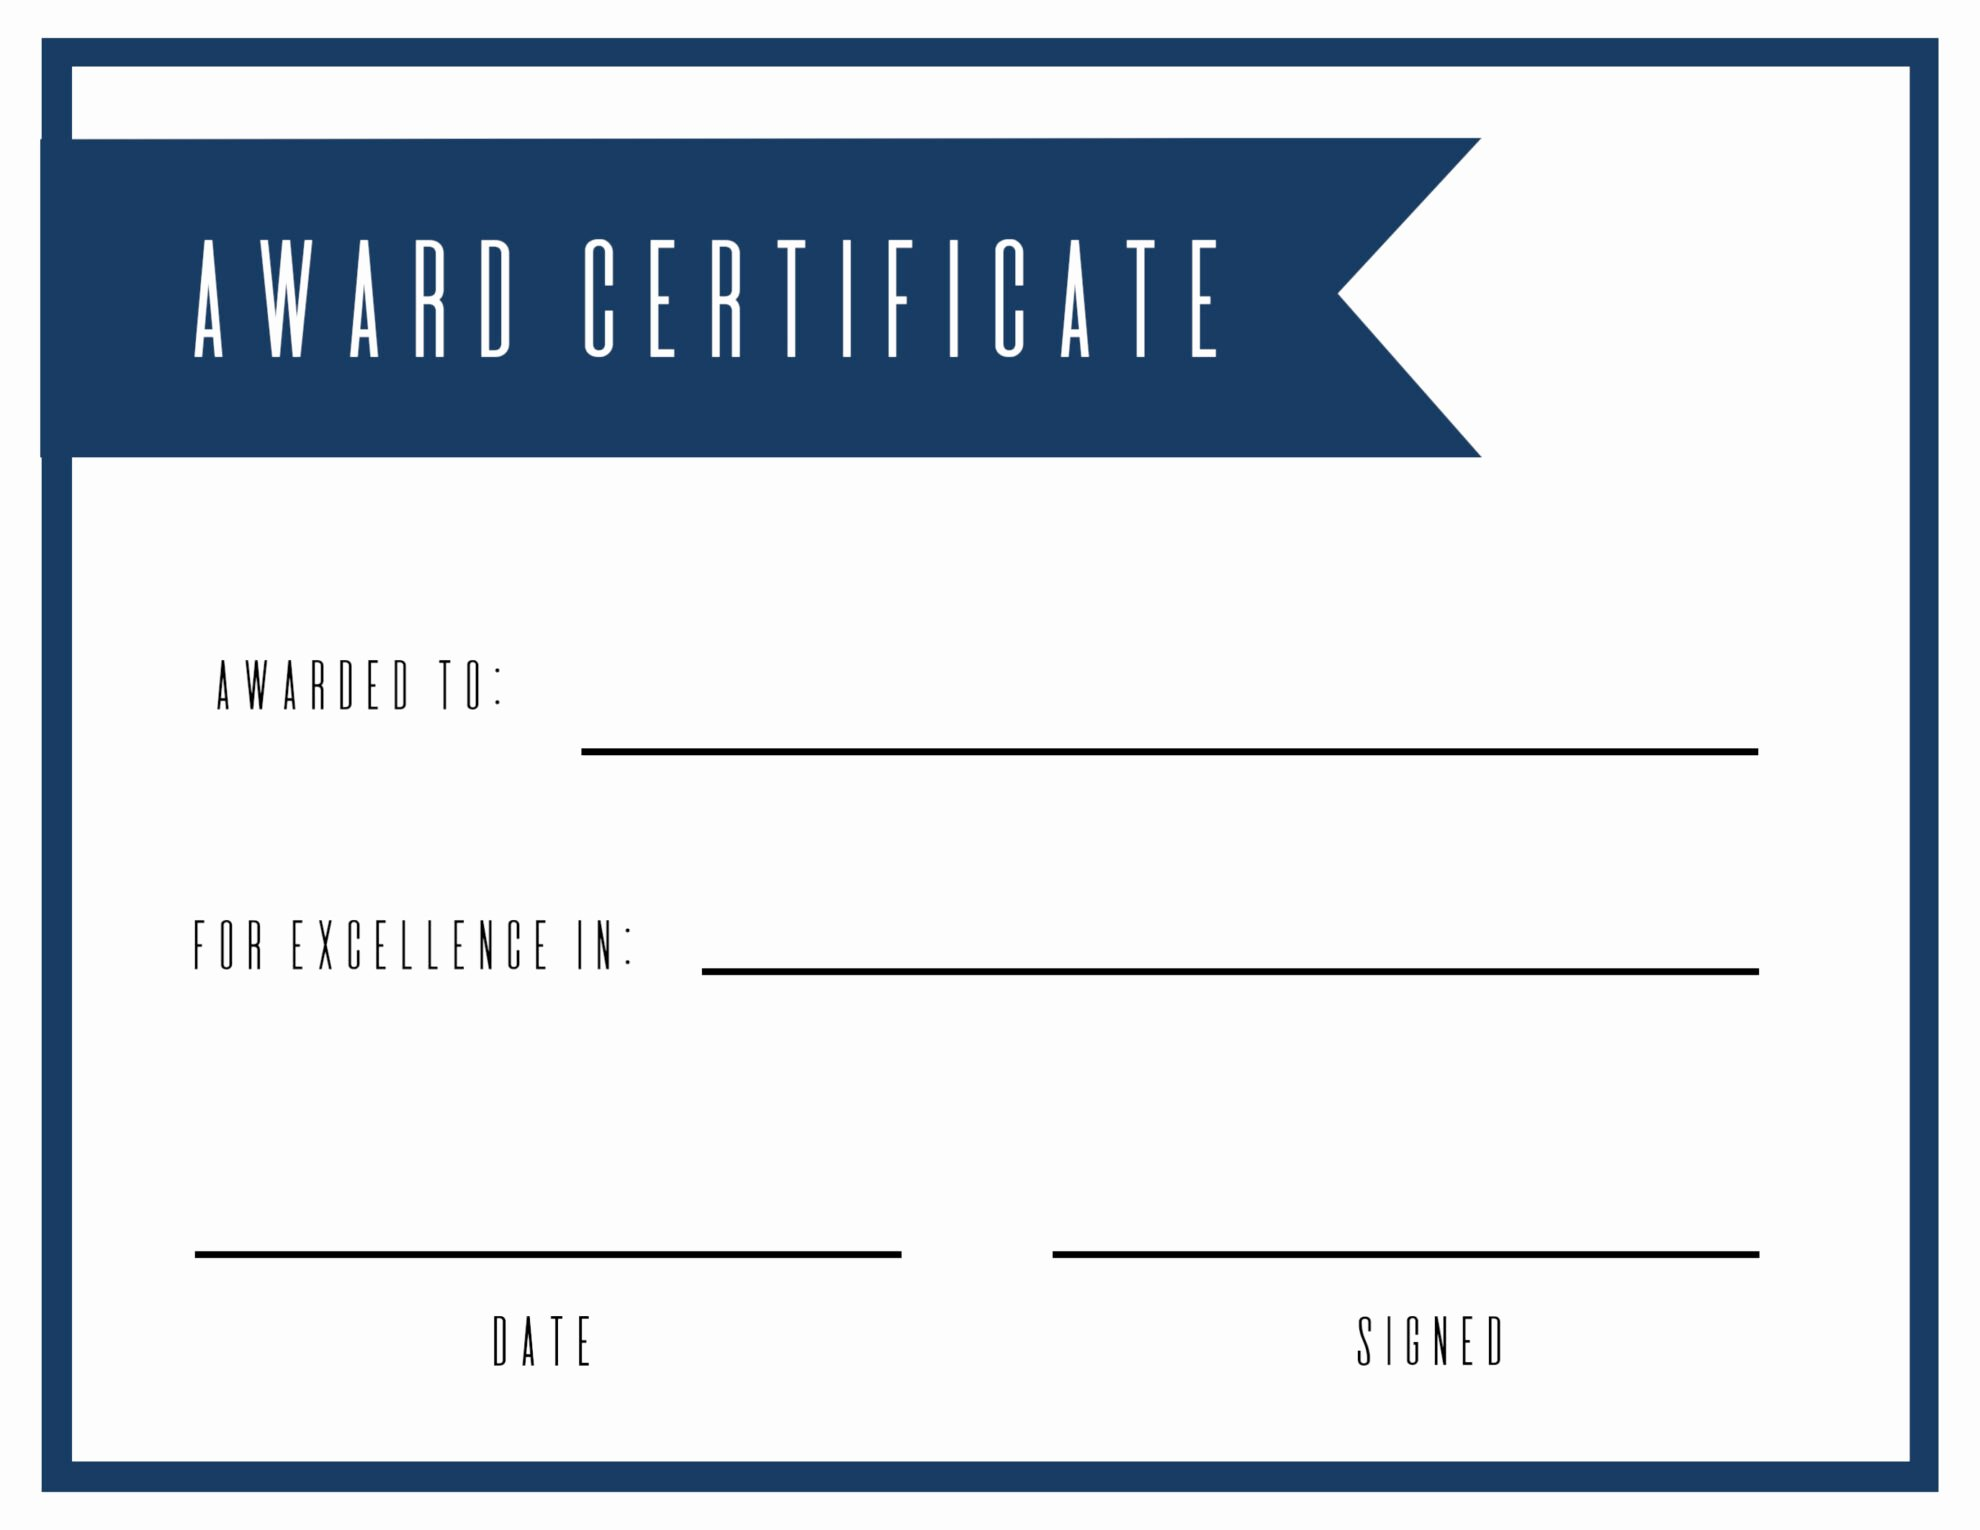 Free Printable Award Certificates Awesome Free Printable Award Certificate Template Paper Trail Design